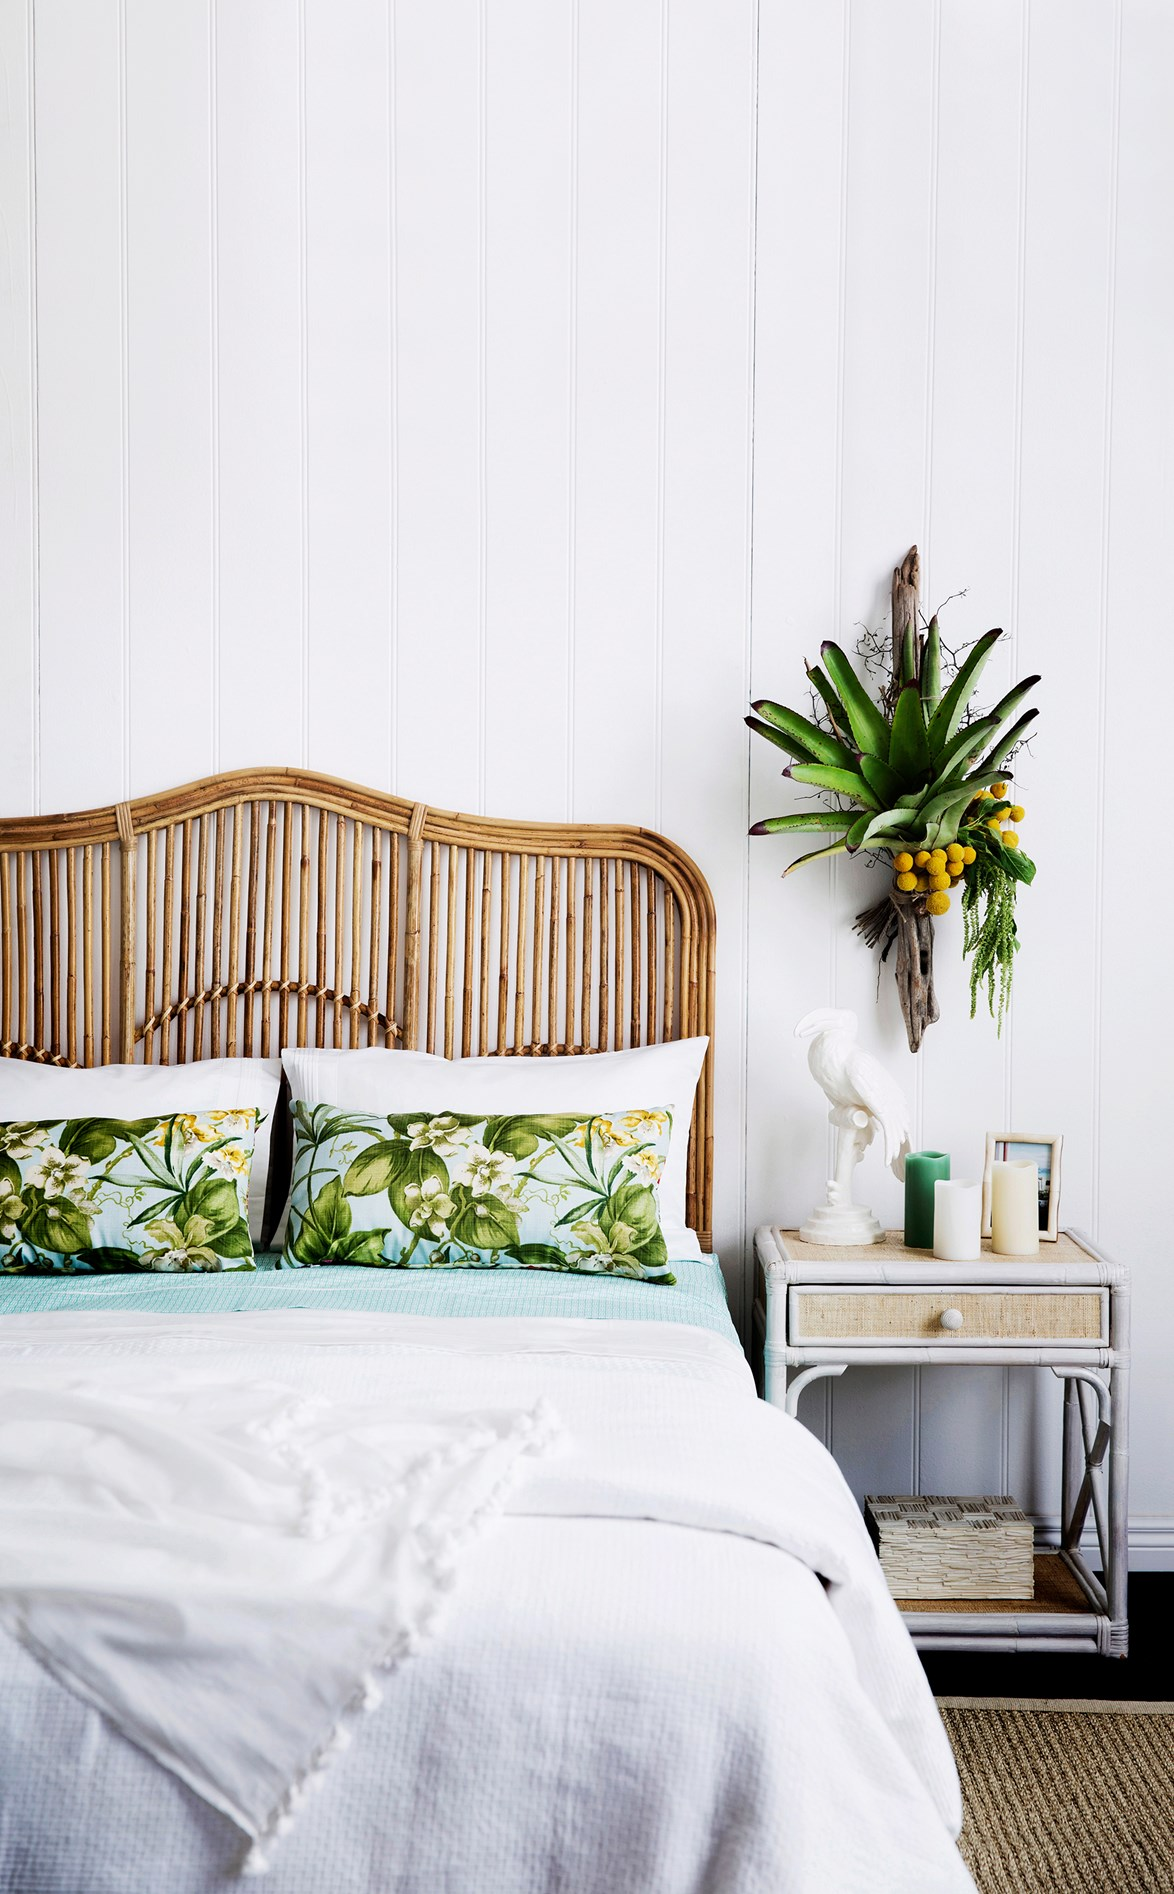 A cane or rattan bedhead can transform even the simplest bedroom into an inviting summer retreat. Photo: Chris Warnes / *bauersyndication.com.au*